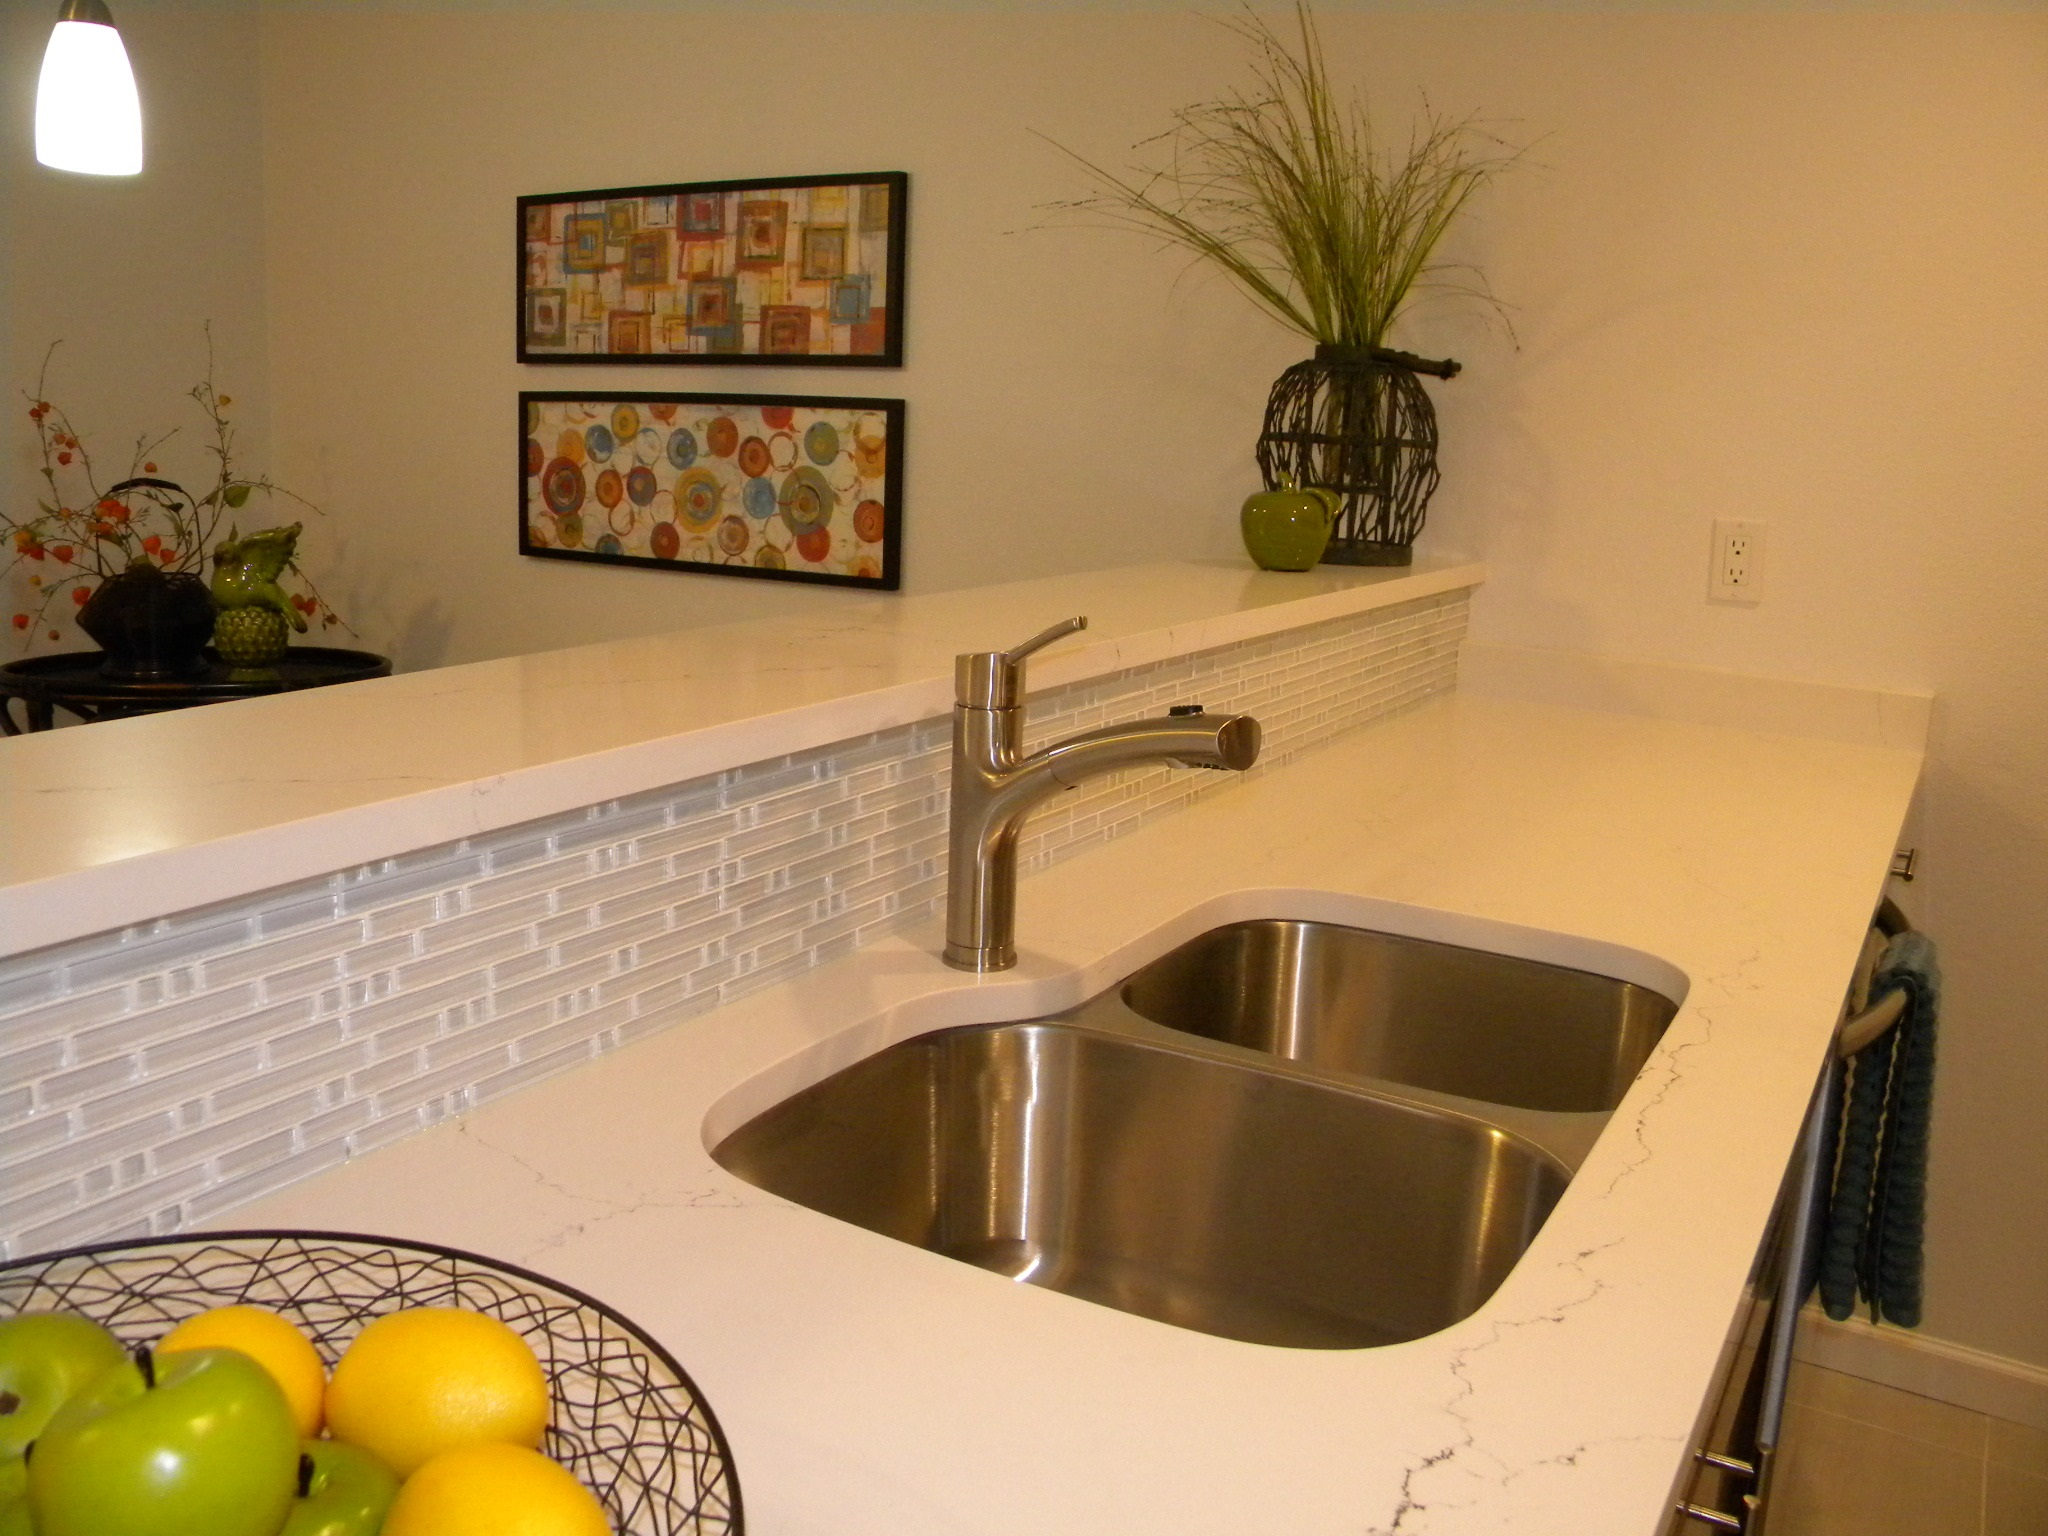 newcastle_condo_kitchen-sink-backsplash.jpg